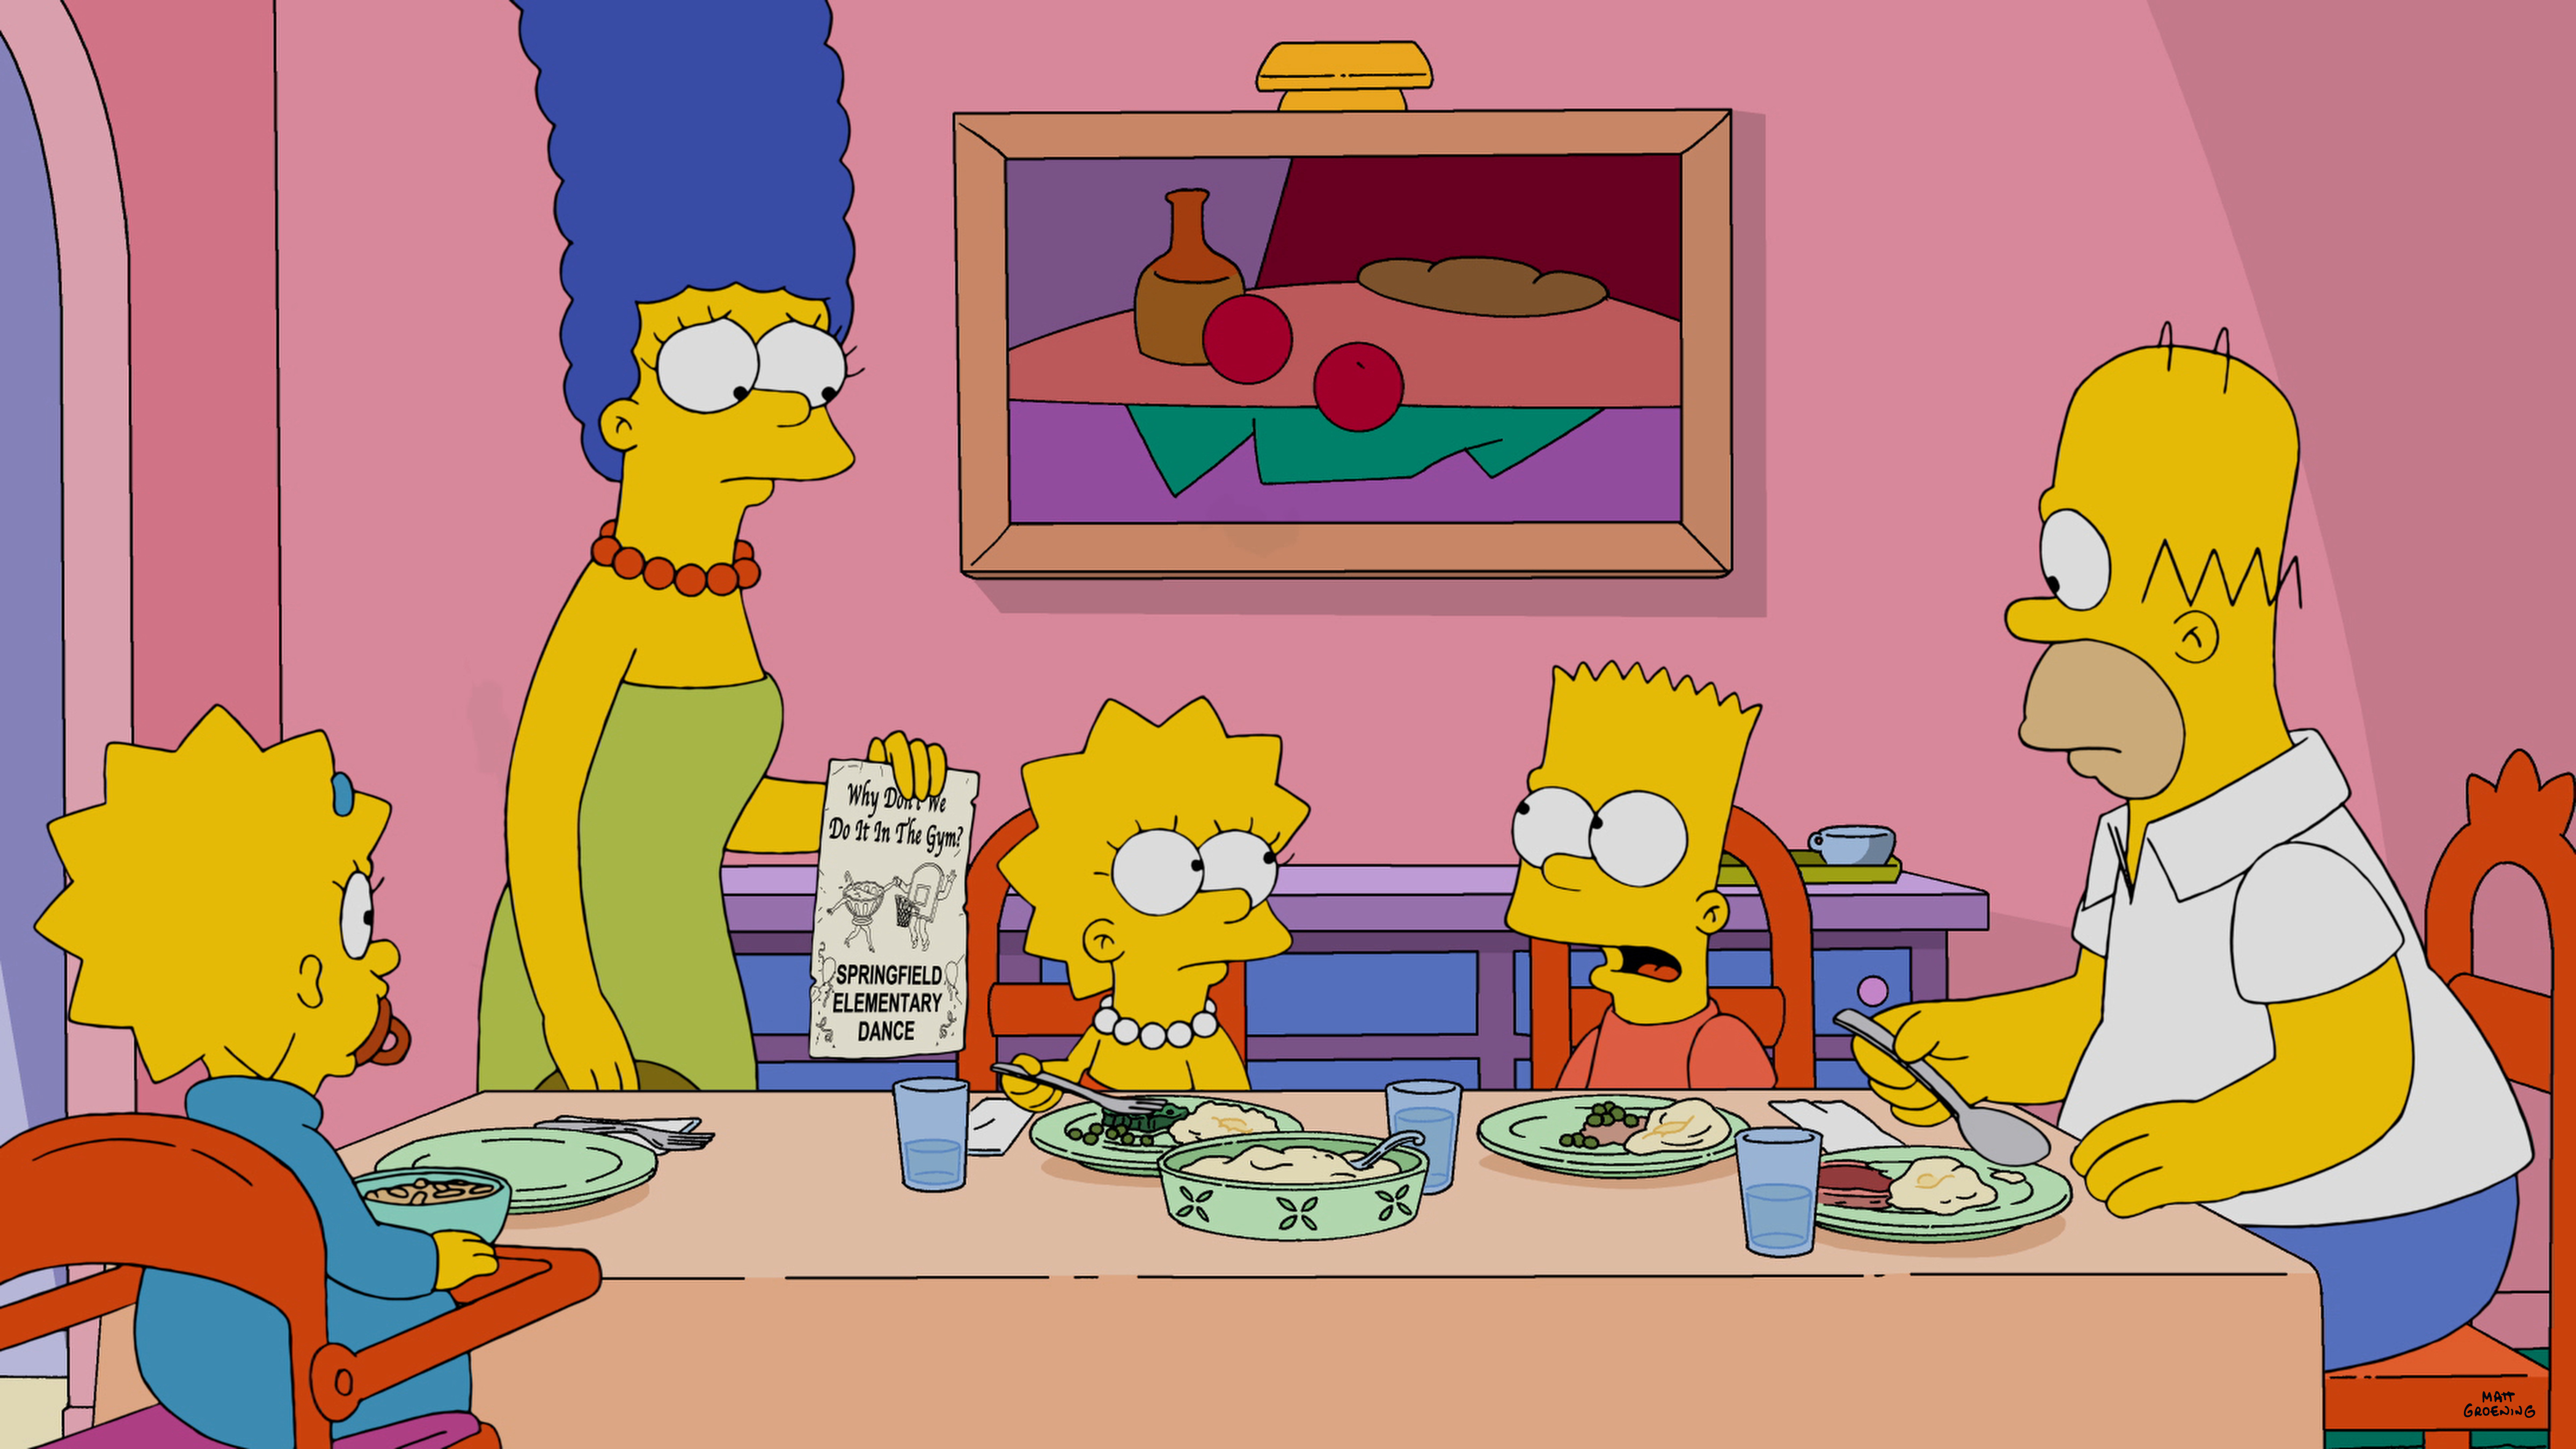 2700 #C6A305 How An Episode Of The Simpsons Is Made The Verge pic Simpson Doors Online 43714800